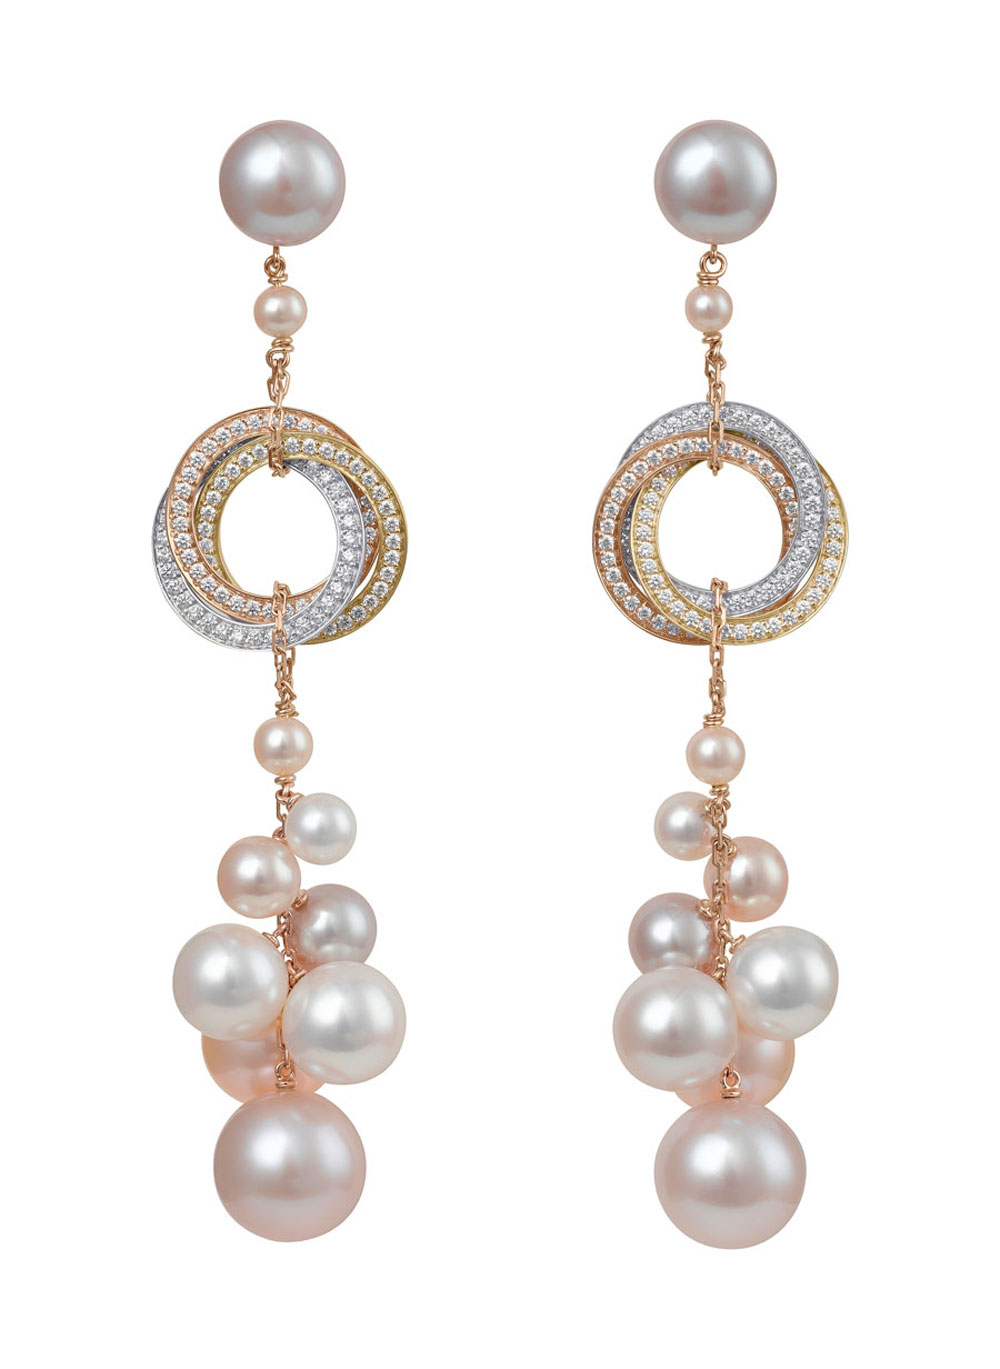 Cartier S New Trinity Collection Shows The Power Of Pearls